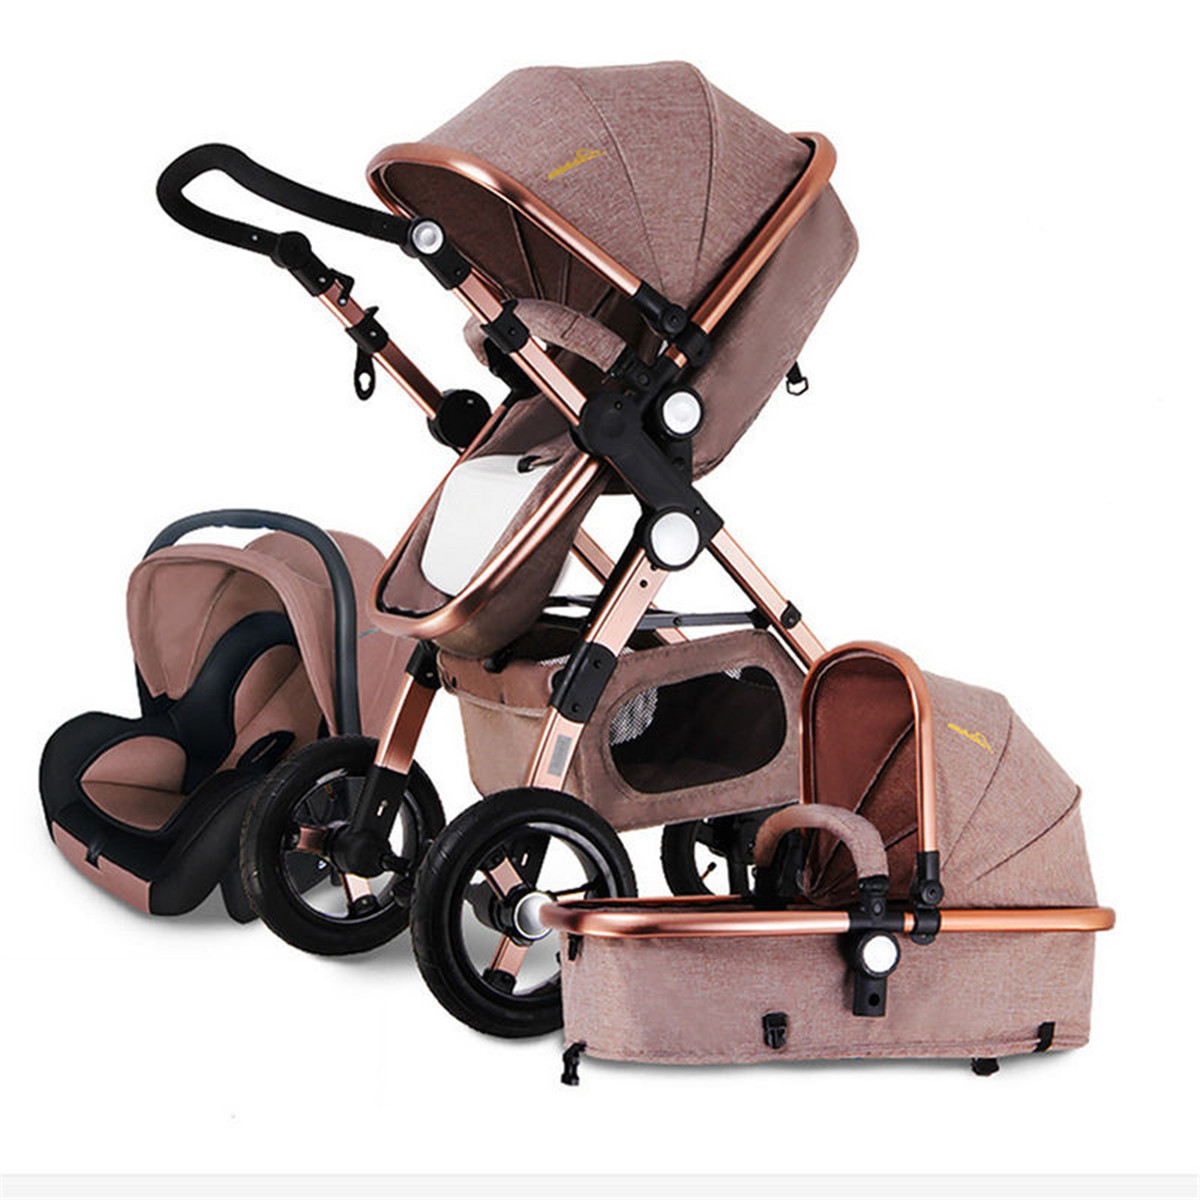 Фото #1: Banggood 3 IN 1 Multifunction Baby Stroller High View Pram Foldable Pushchair Bassinet Car Seat